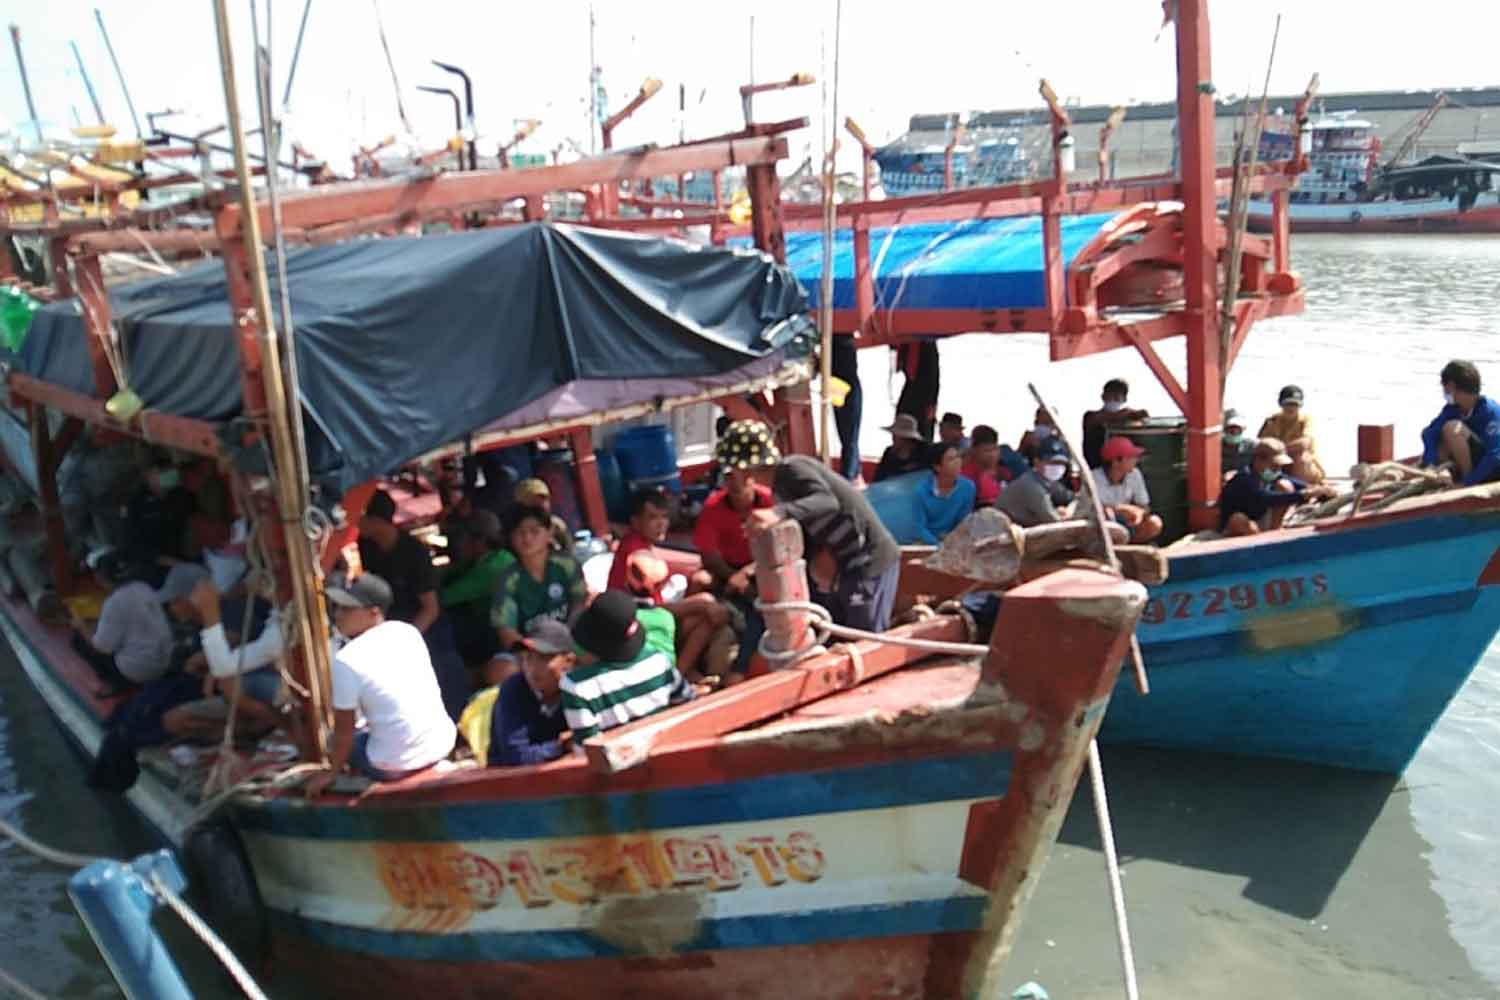 Two of the four seized Vietnamese fishing boats, and their crews, found trawling illegally in Thai waters, moored at Pattani boat landing. (Photo: Abdullah Benjakat)